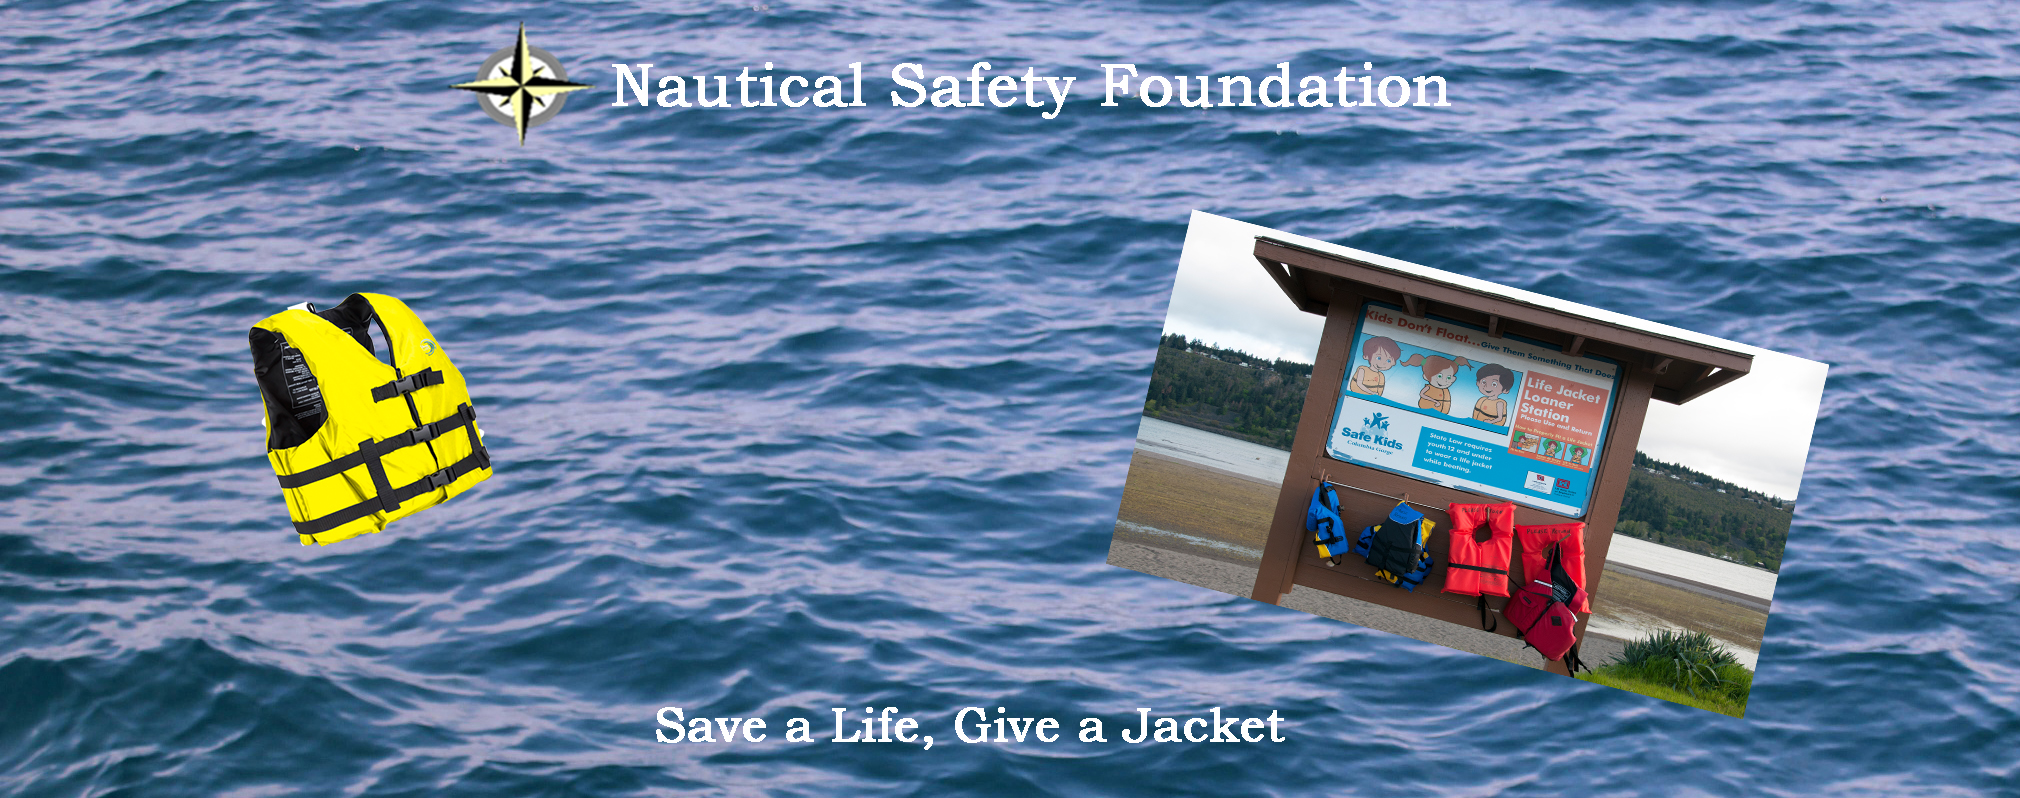 Nautical Safety Foundation